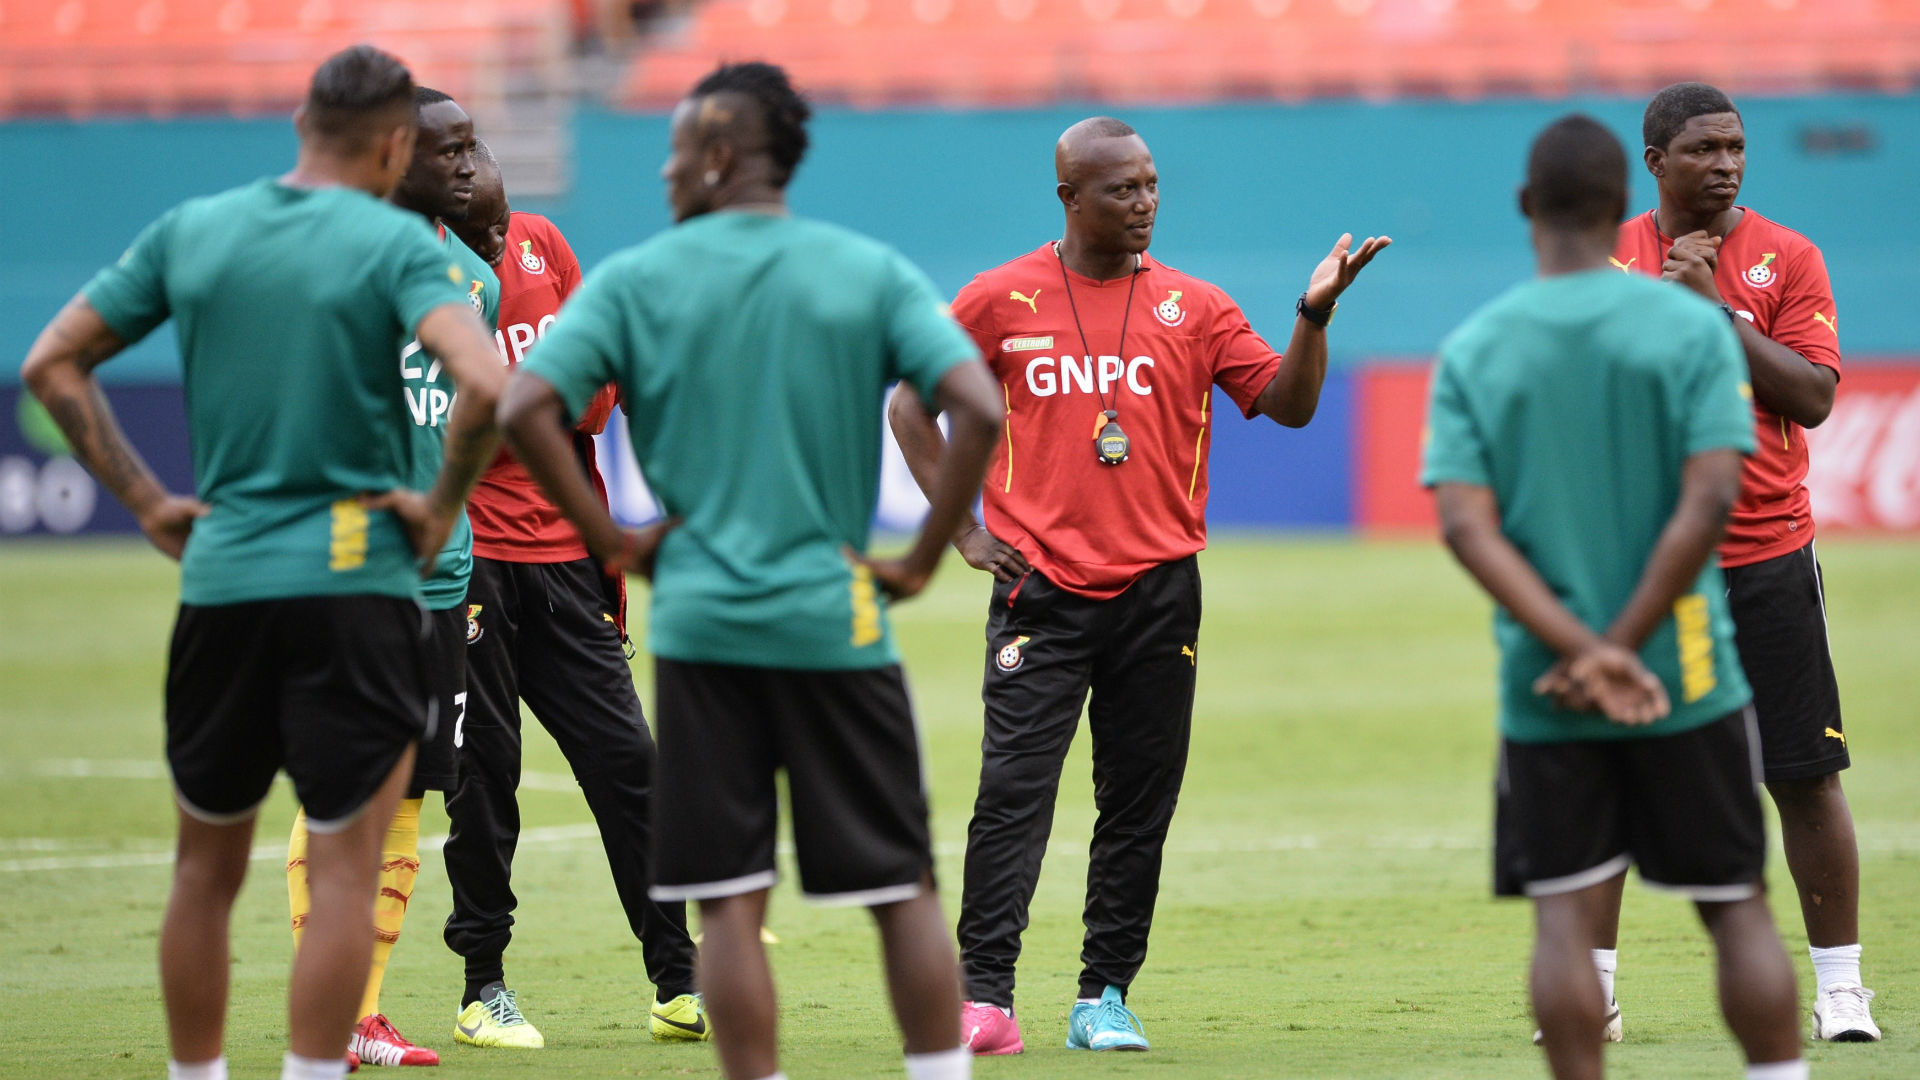 New Ghana coach promises to revive national team